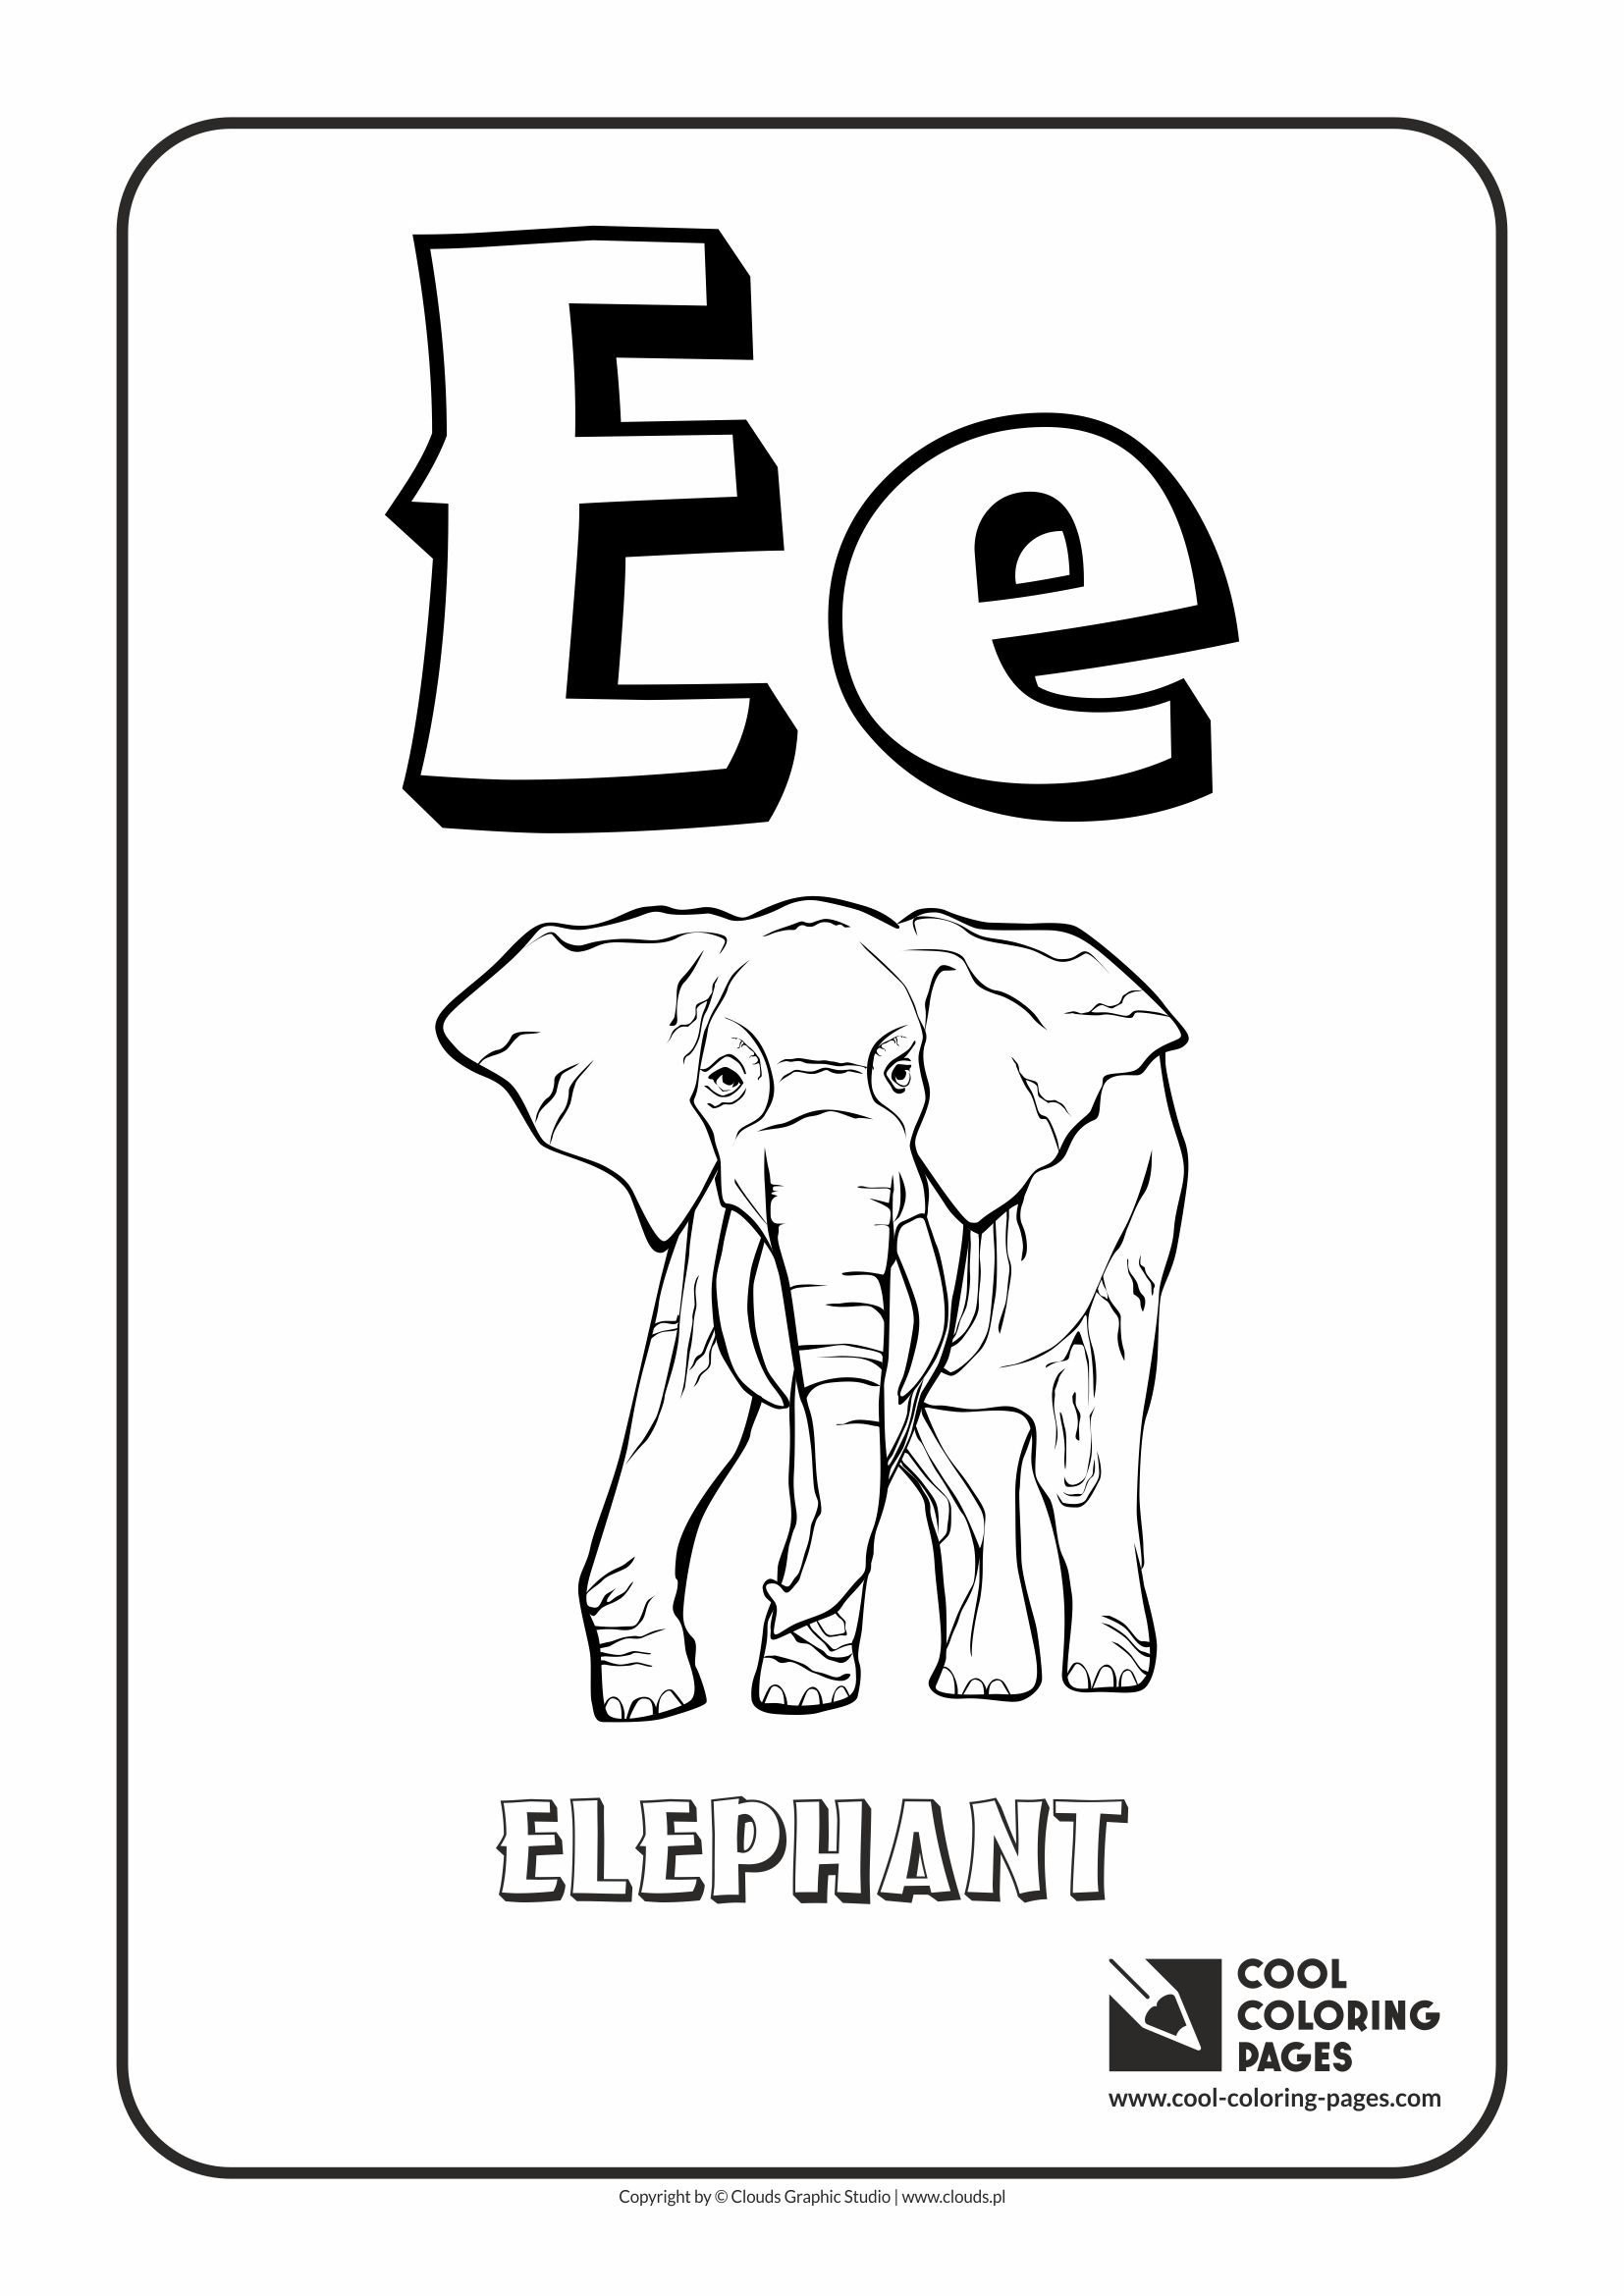 Coloring pages for letter m - Cool Coloring Pages Alphabet Letter E Coloring Page With Letter E